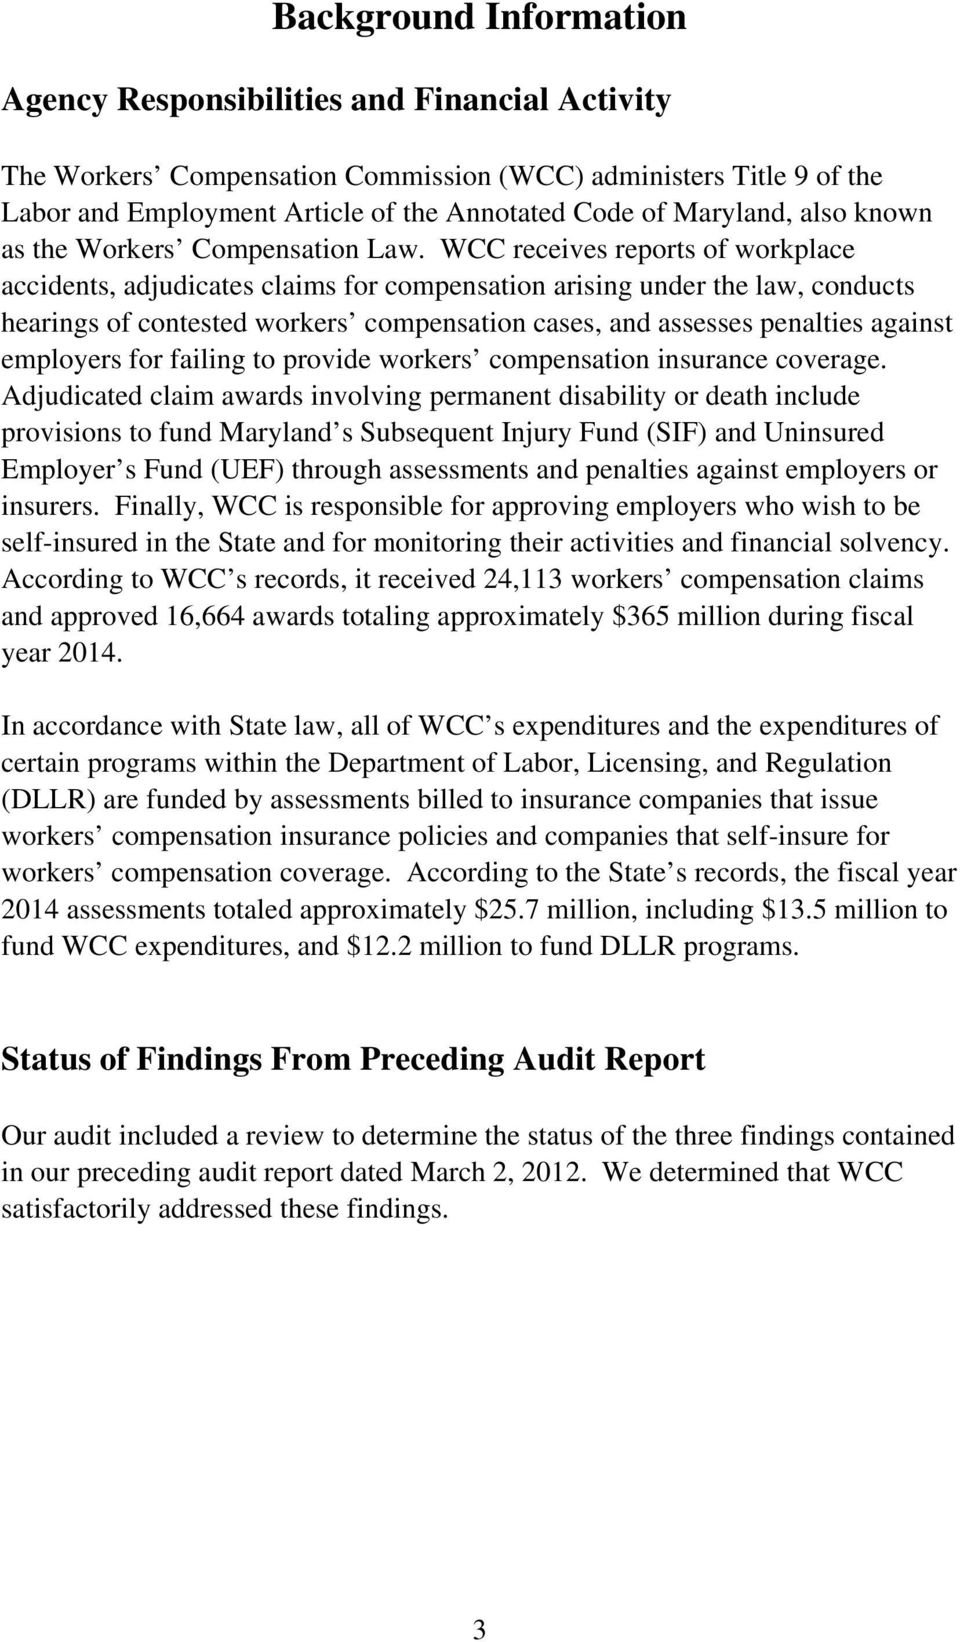 WCC receives reports of workplace accidents, adjudicates claims for compensation arising under the law, conducts hearings of contested workers compensation cases, and assesses penalties against